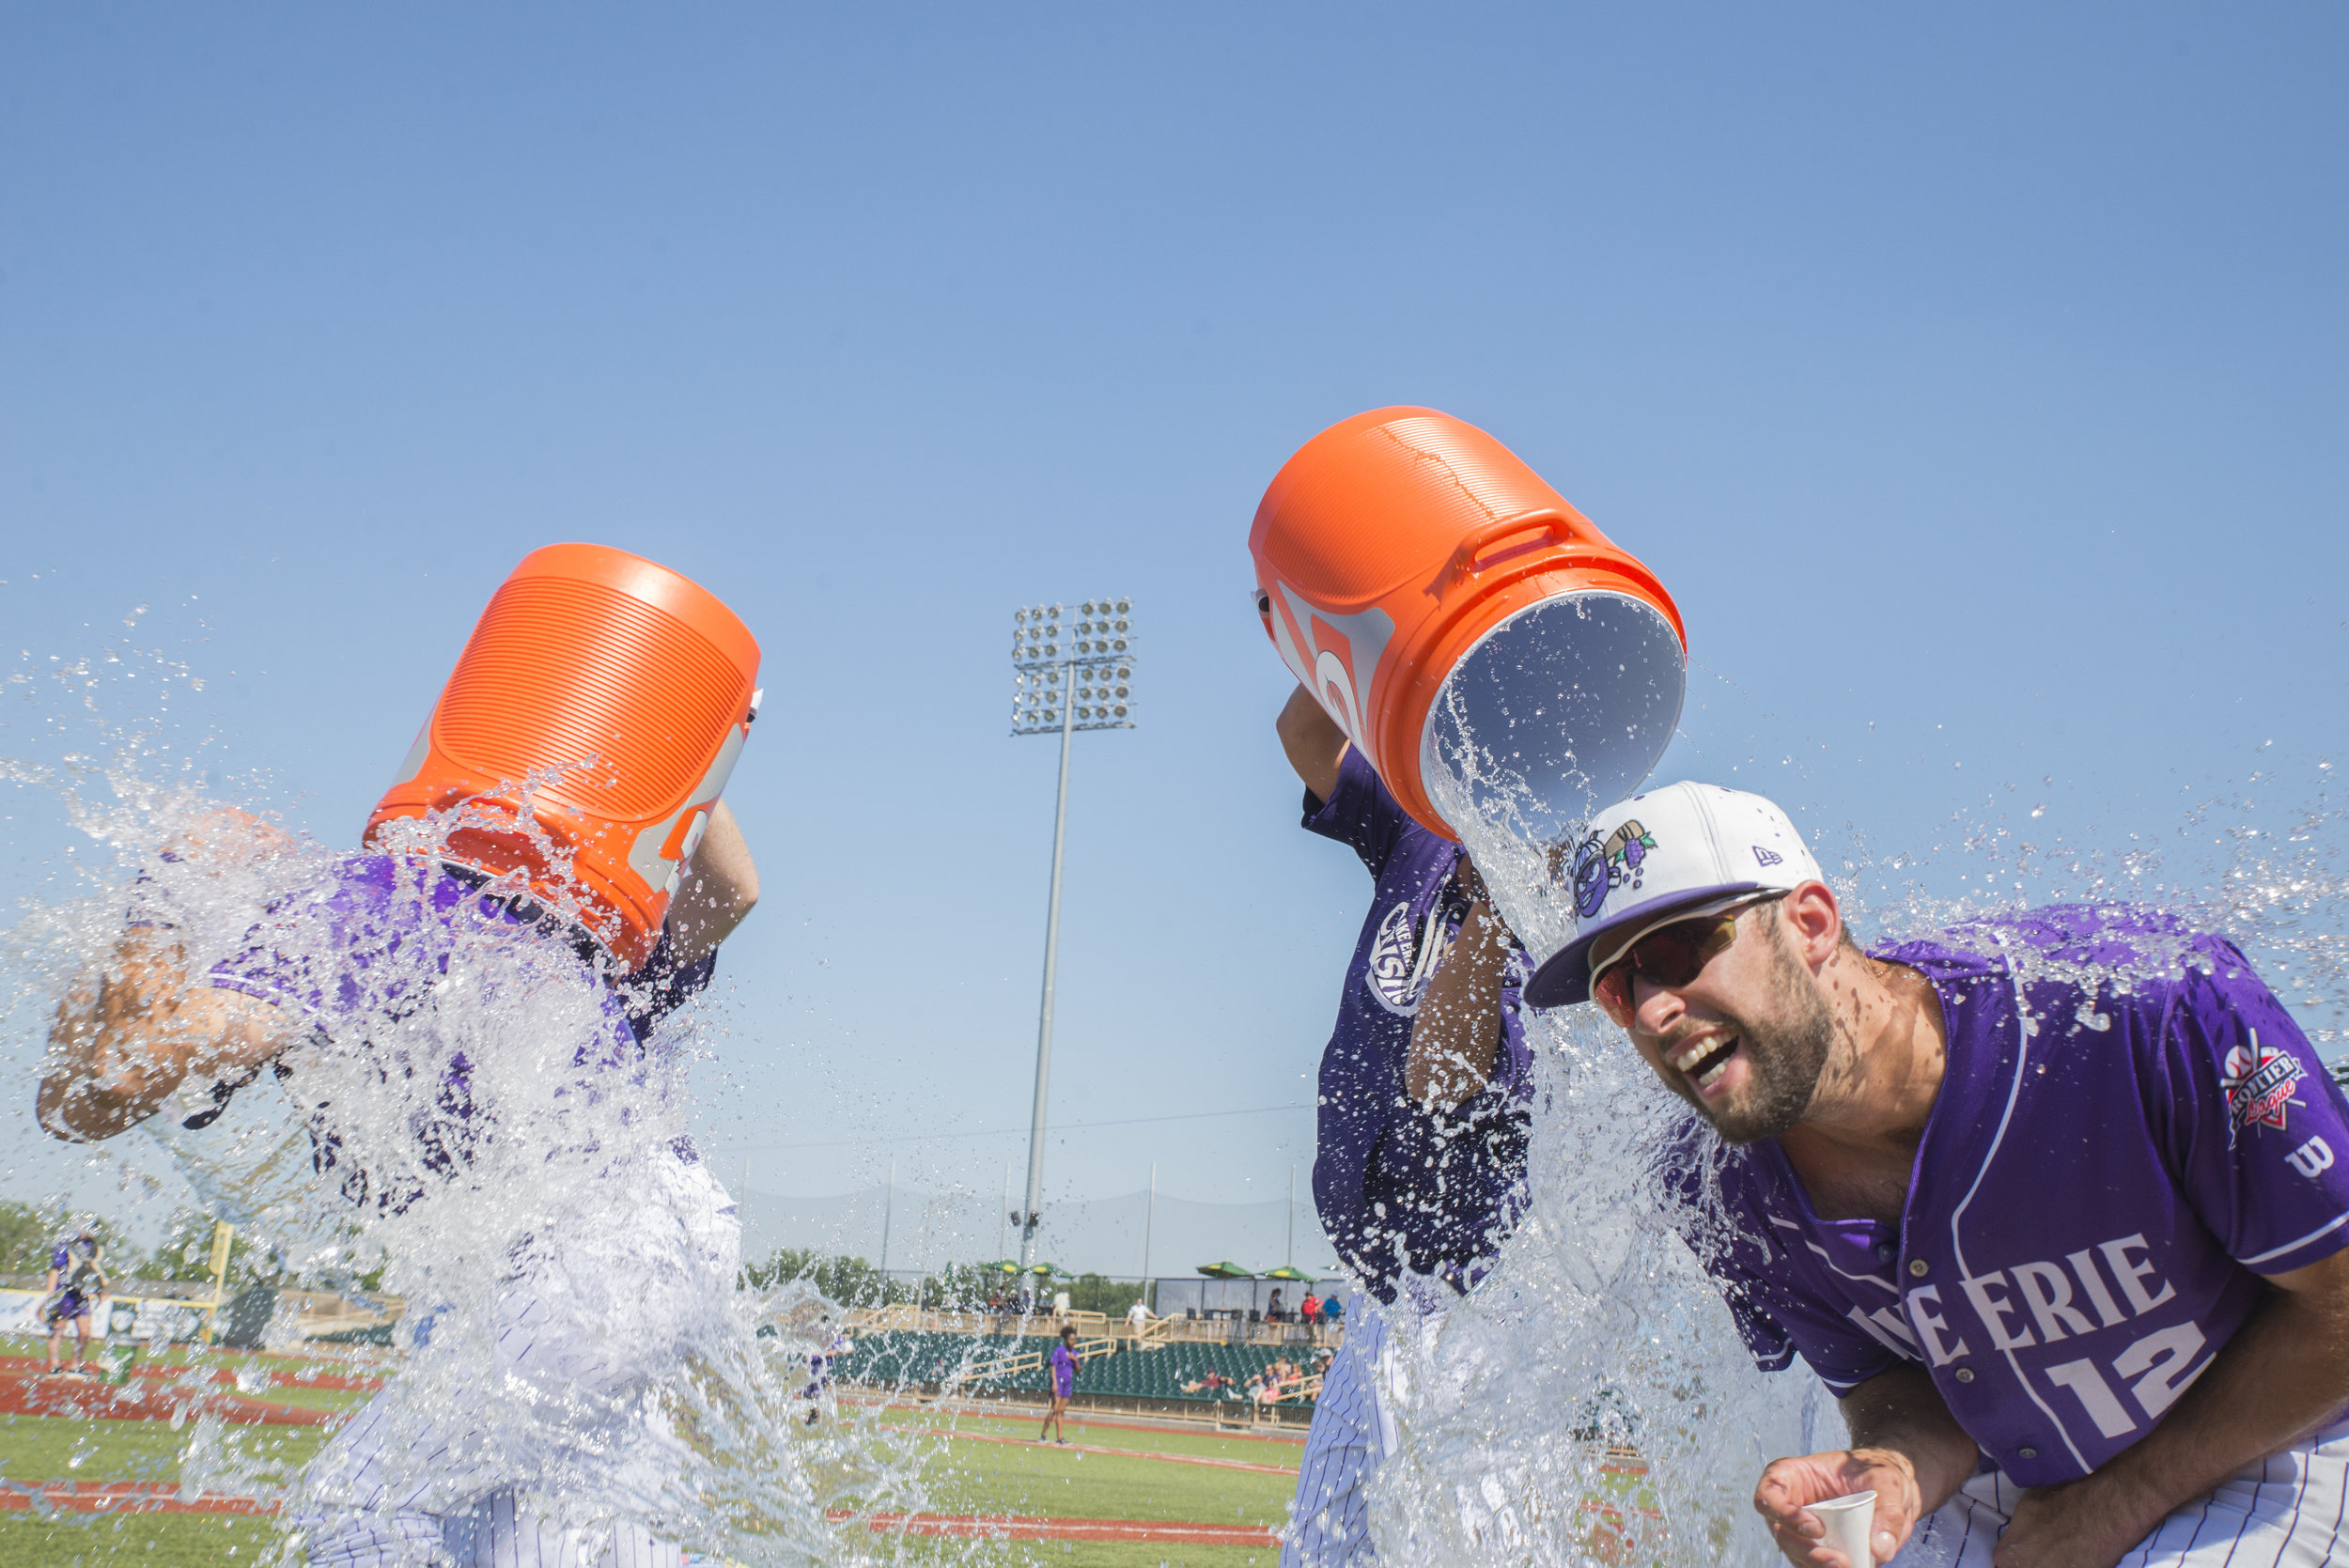 Taking an ice bath after being named player of the game.